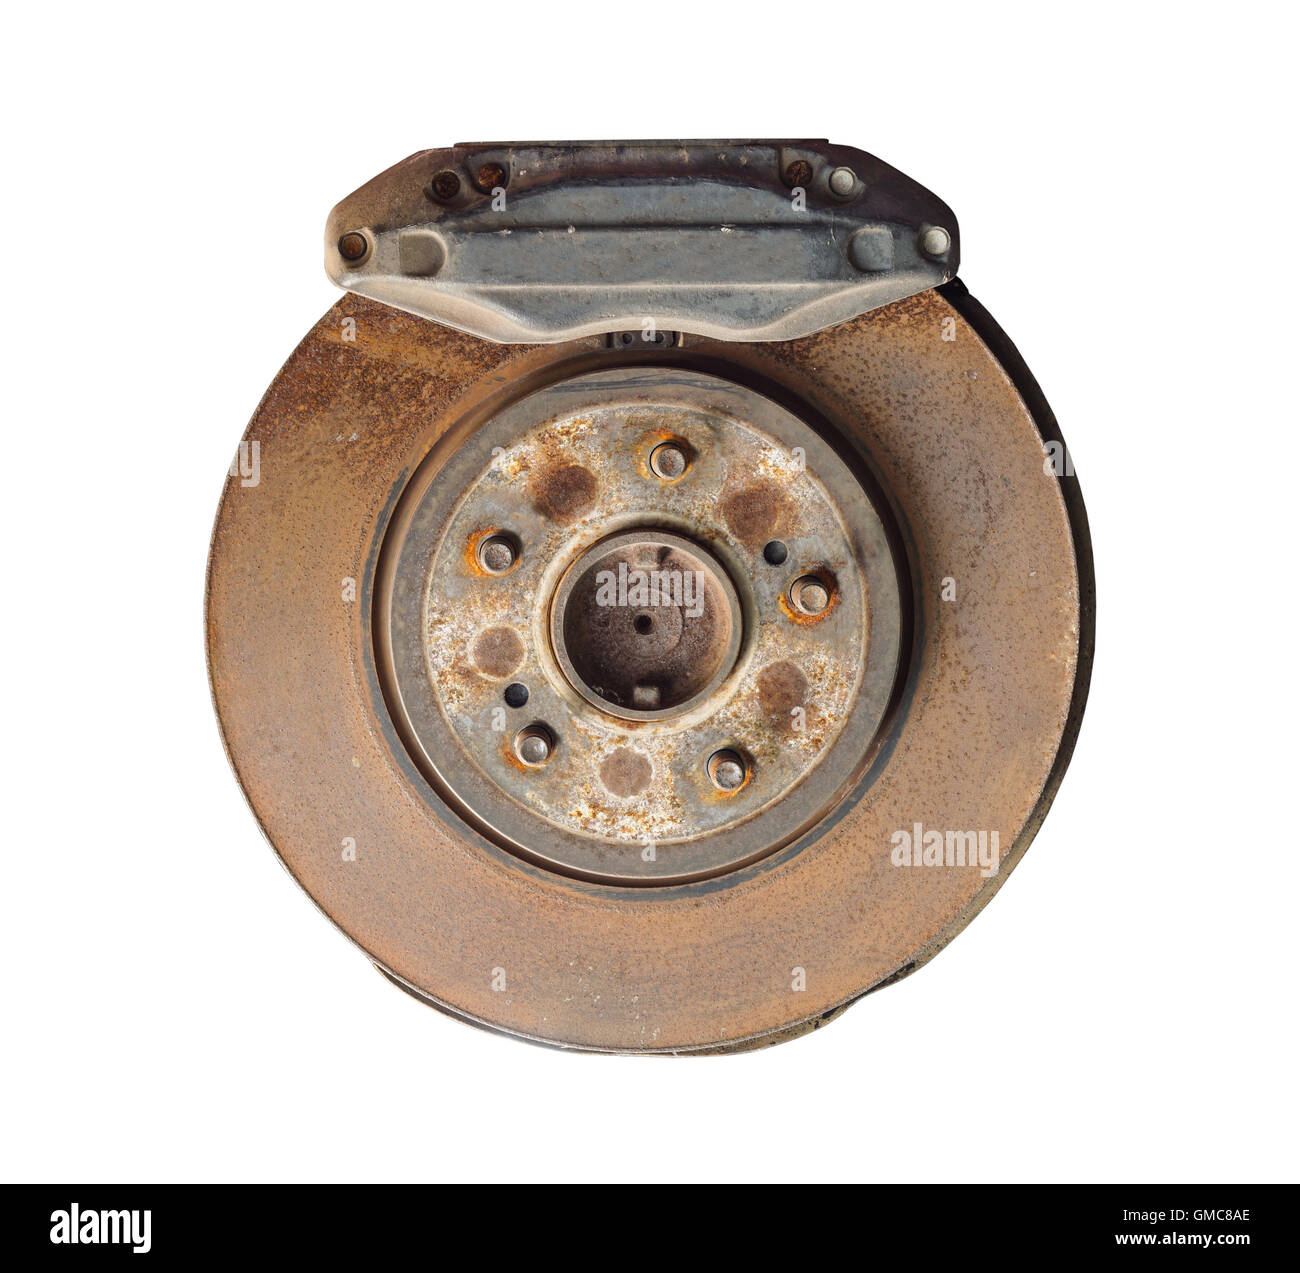 Old and rusty car disc brake and caliper, isolated on white background - Stock Image